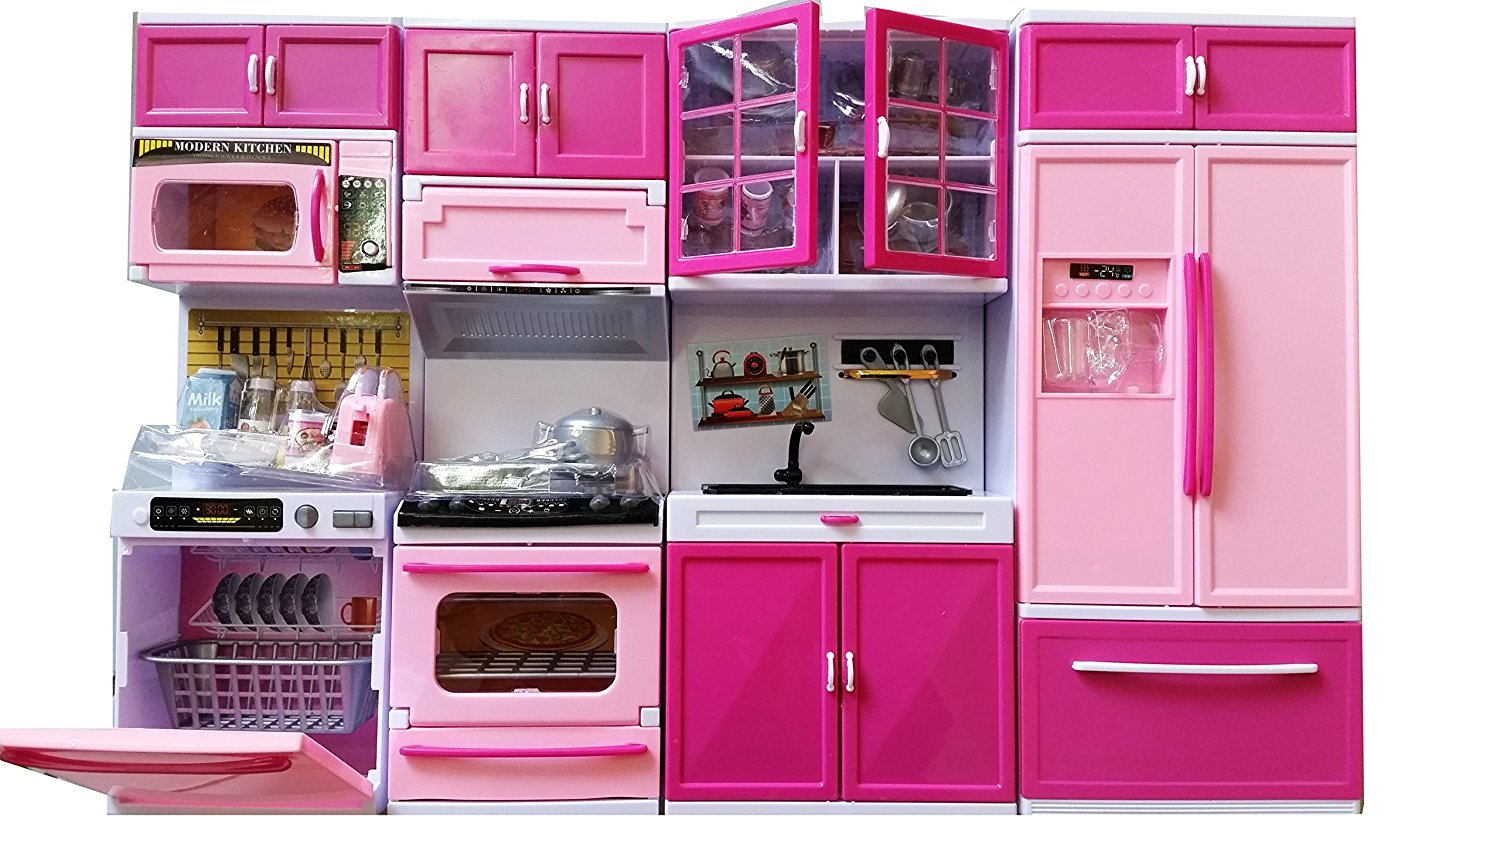 set complete image girls ideas play kitchen inspiration awesome and a little sasg for pink